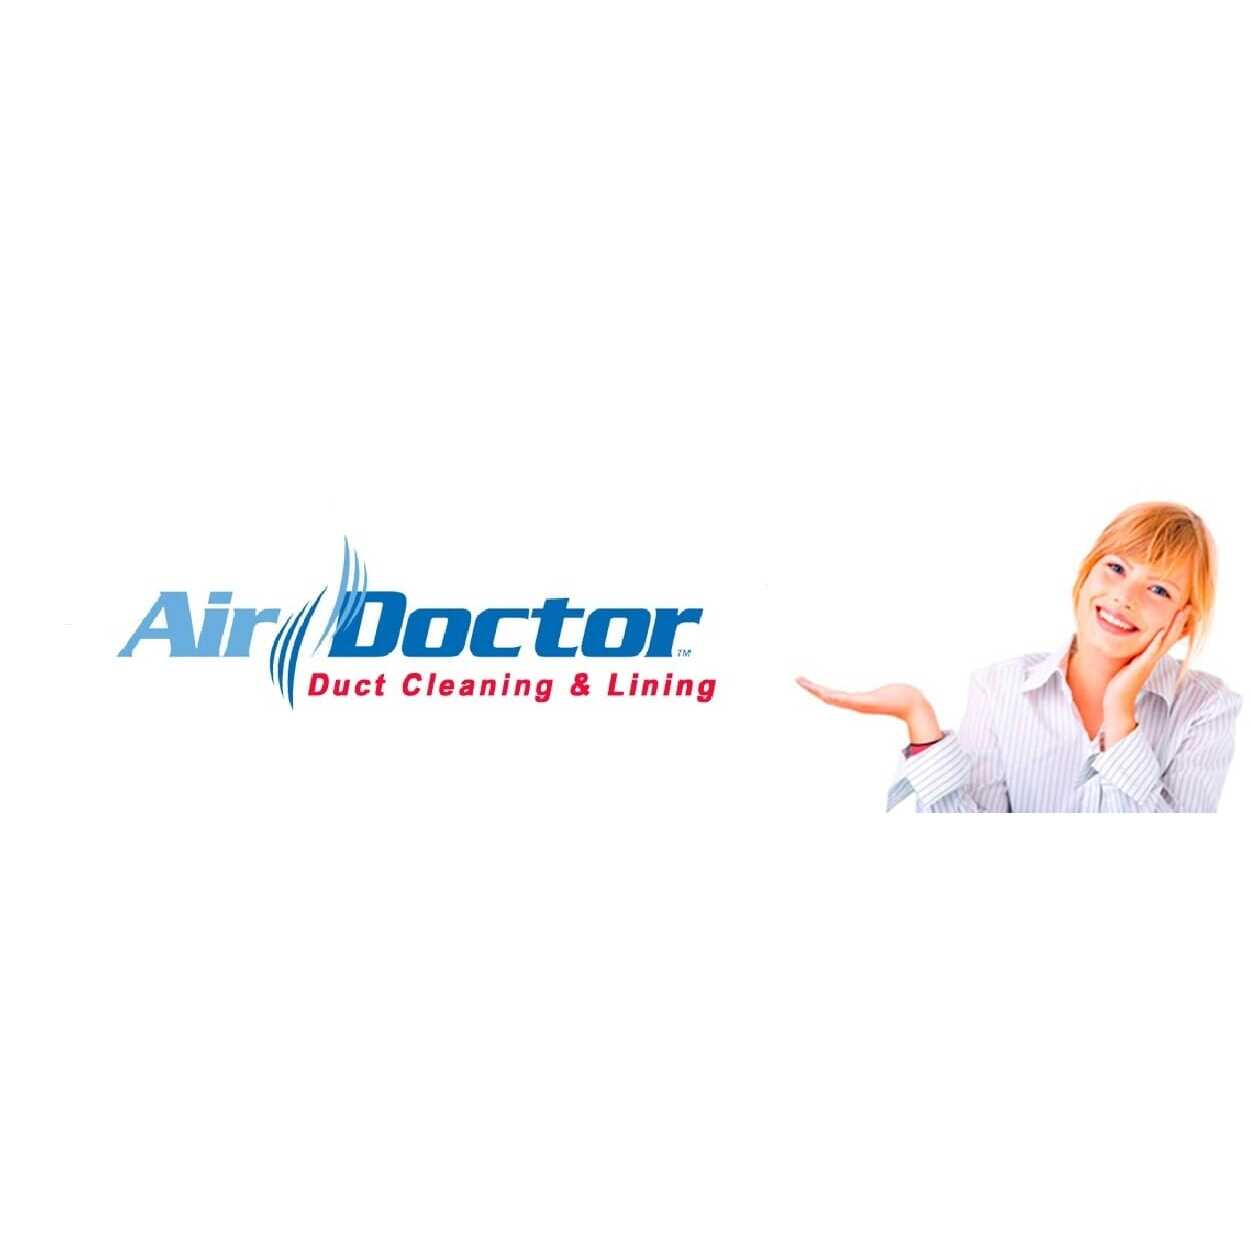 Air Doctor Duct Cleaning & Lining